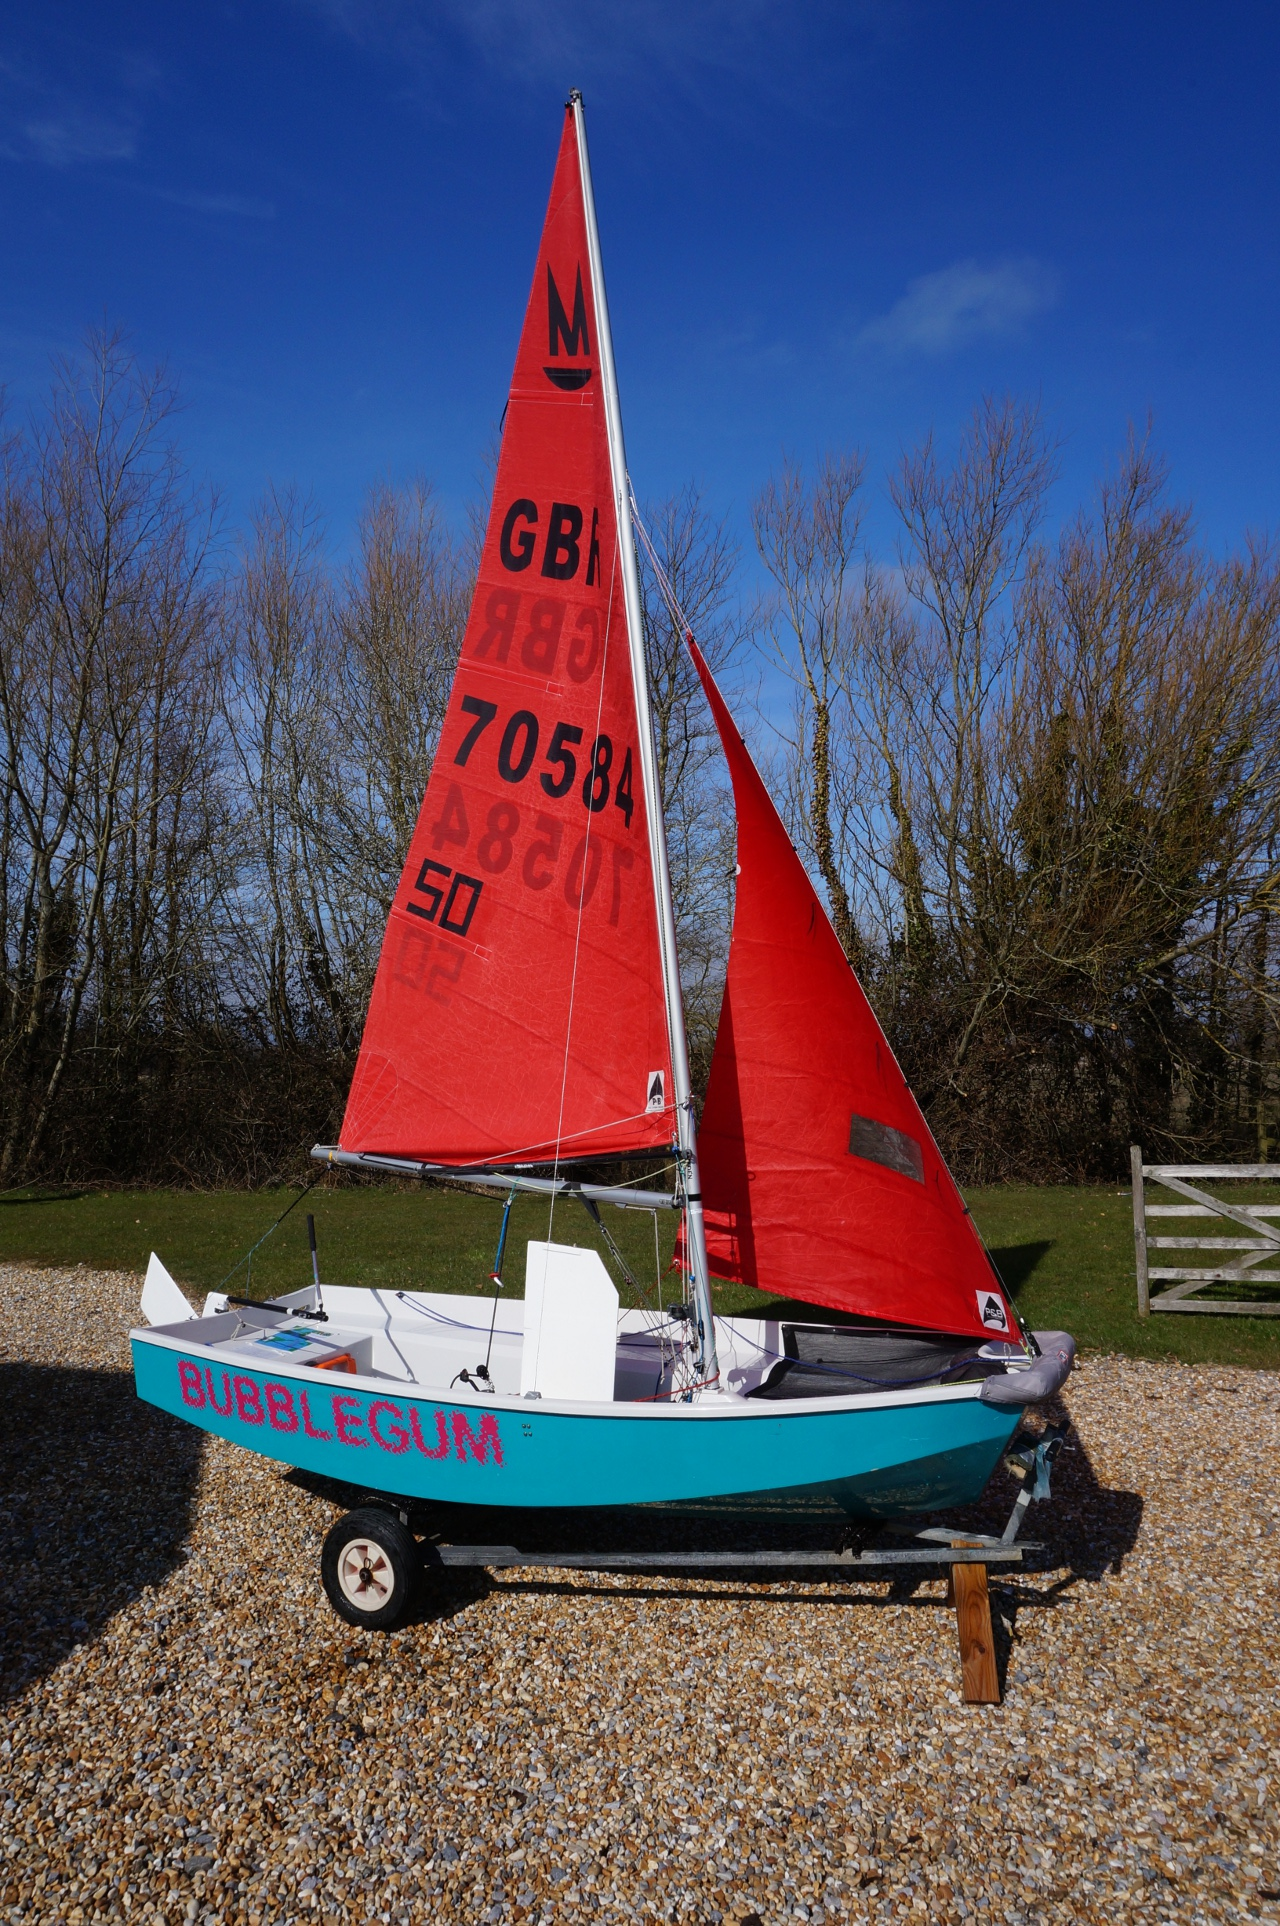 An aquamarine Mirror dinghy rigged up on a driveway